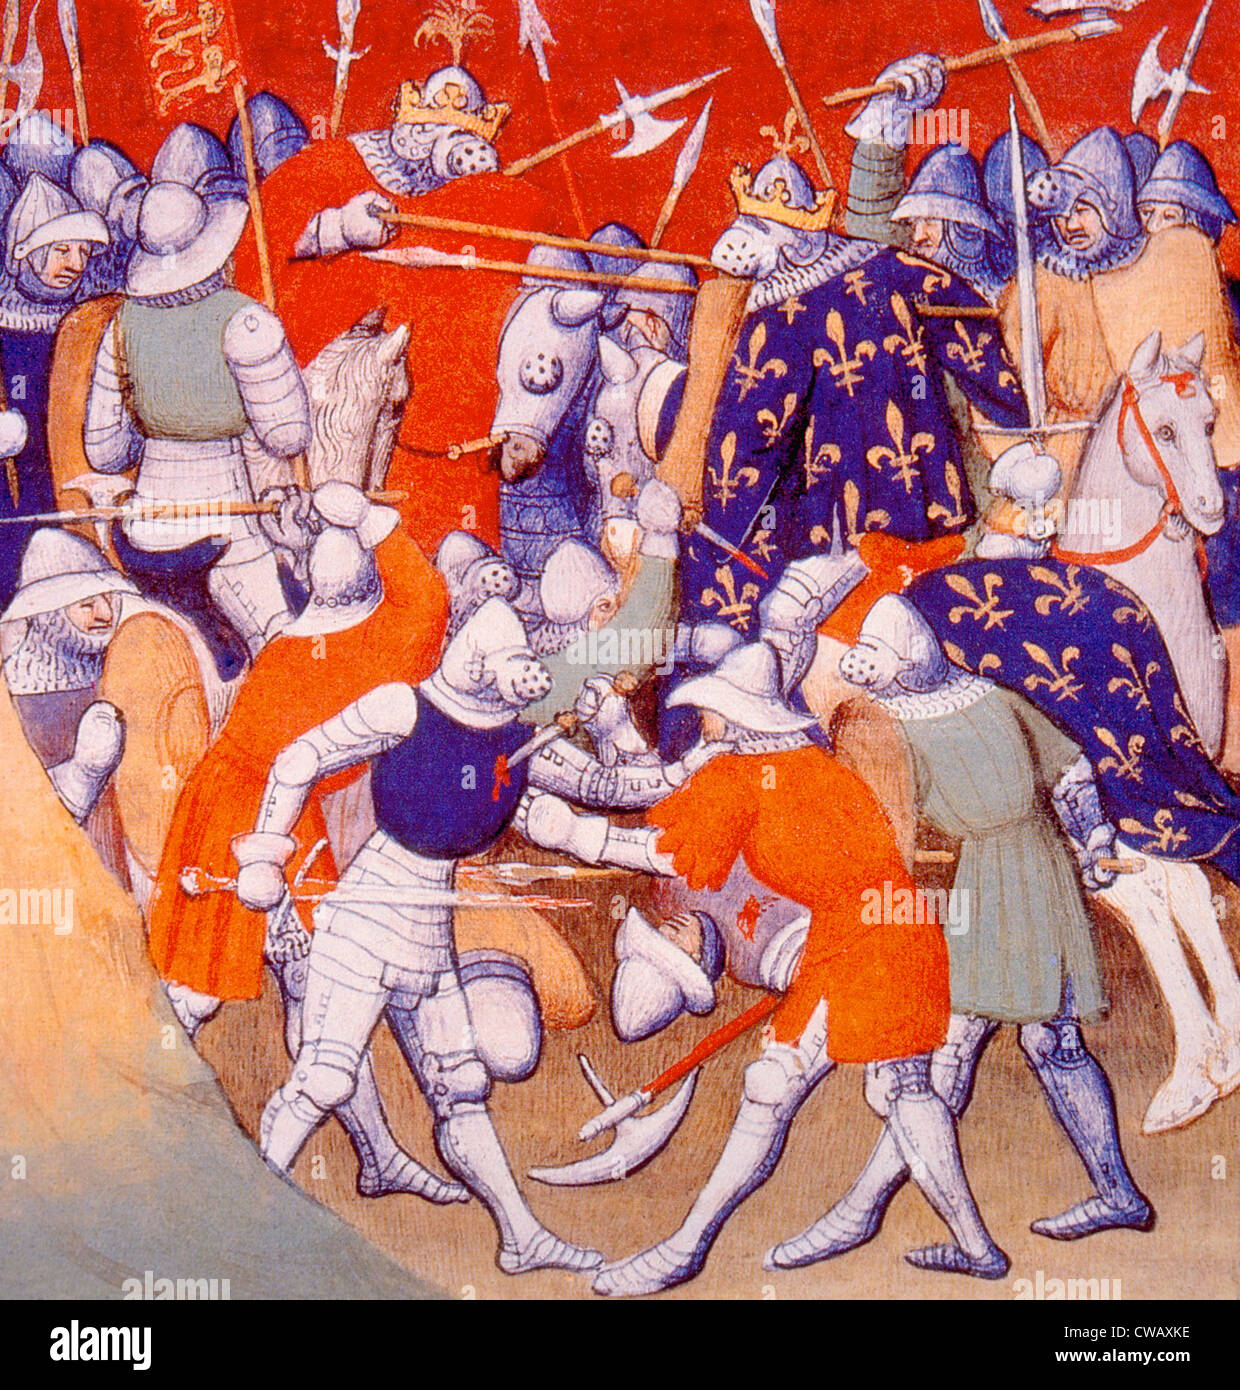 The Battle of Poitiers, Edward the Black Prince defeats and captures John II of France and his son, Philip the Bold - Stock Image